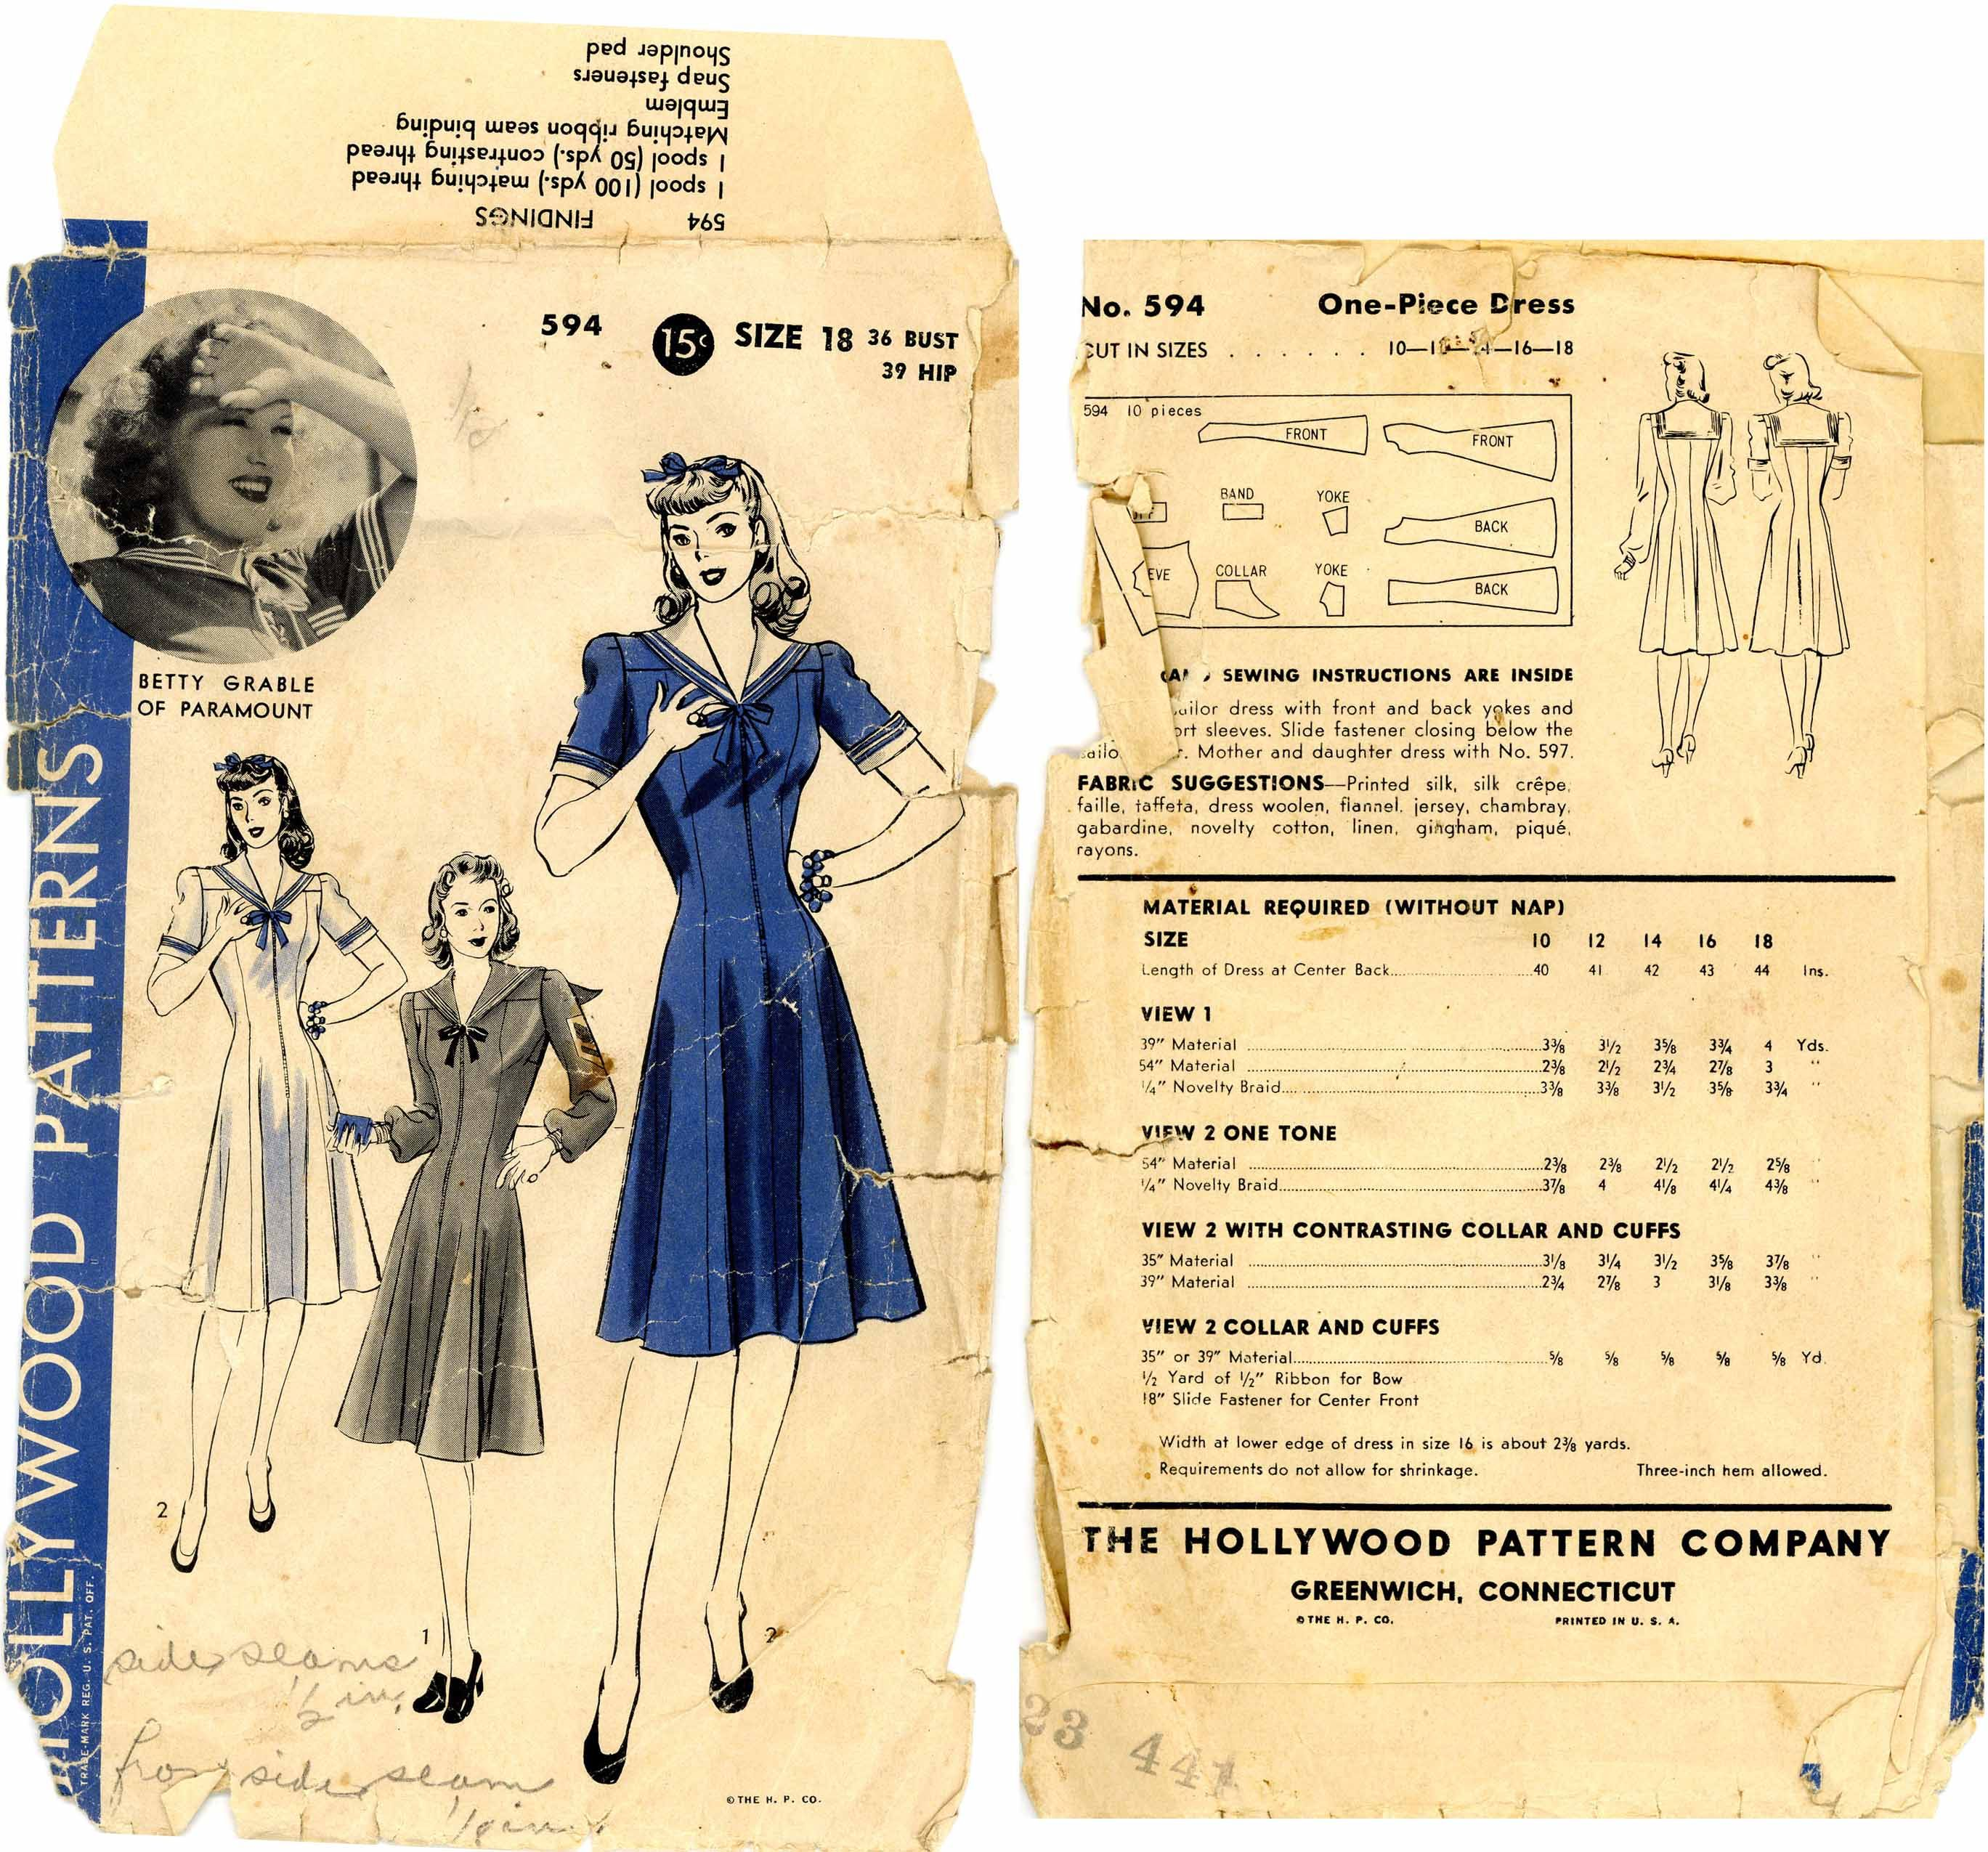 1940s () One-Piece Dress Navy theme  Hollywood Patterns 594